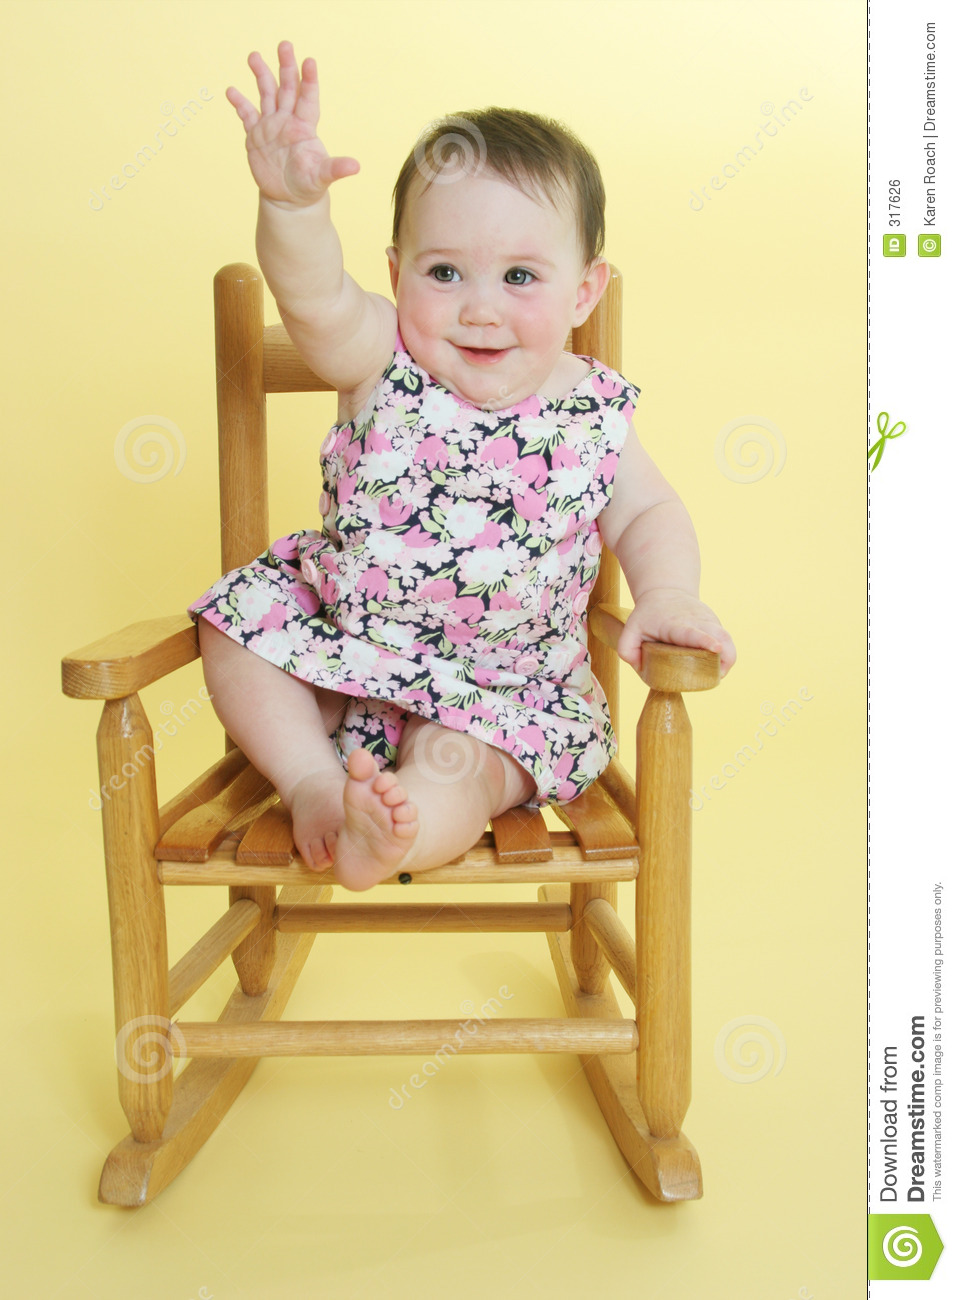 free rocking chair plans country french chairs upholstered happy baby raising hand stock photo. image of hand, motherhood - 317626